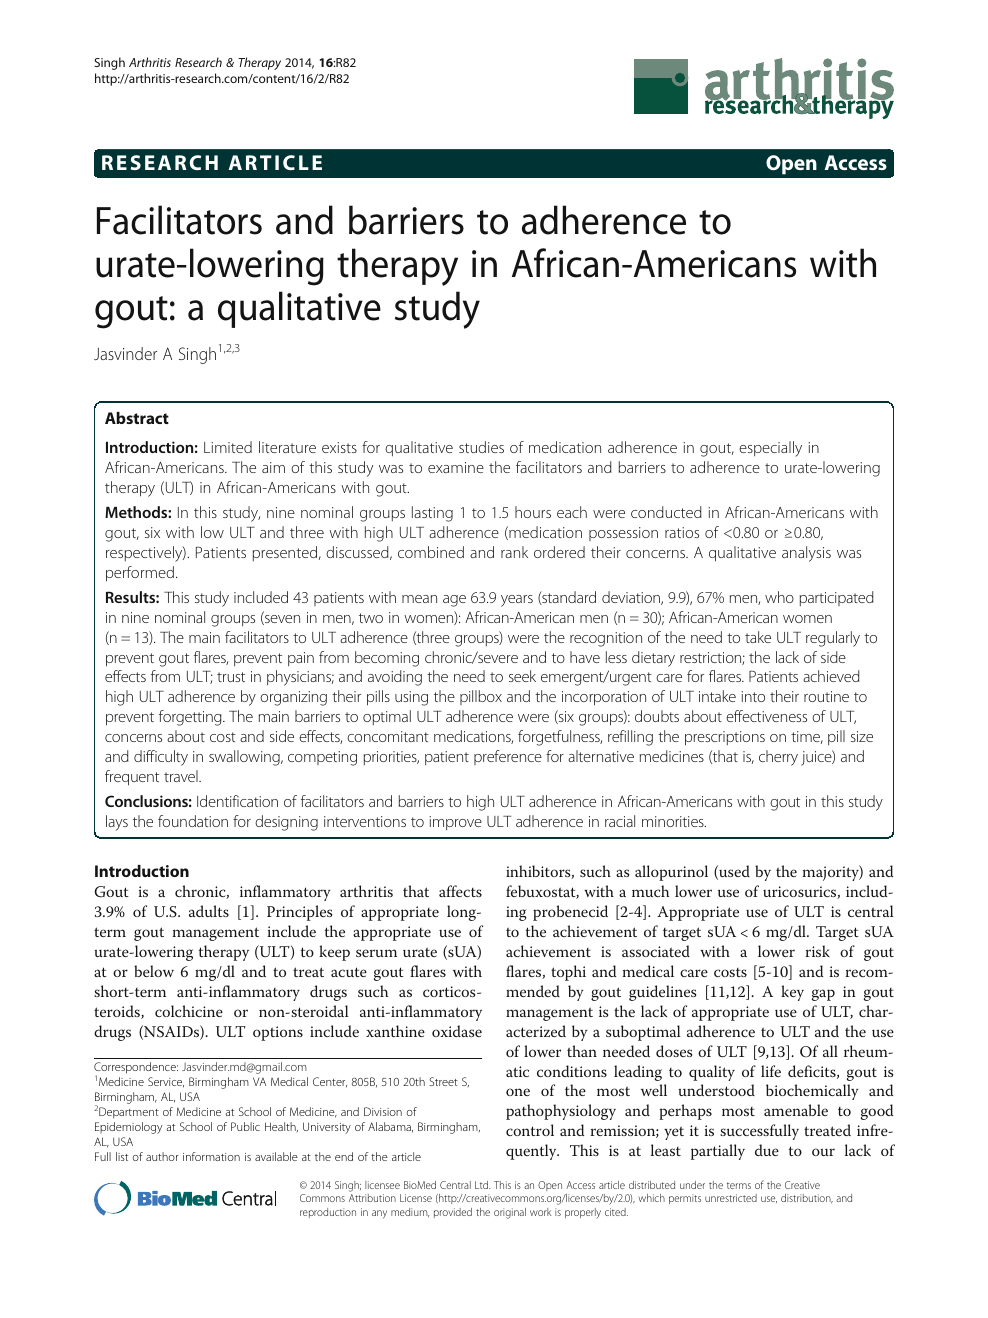 Facilitators and barriers to adherence to urate-lowering